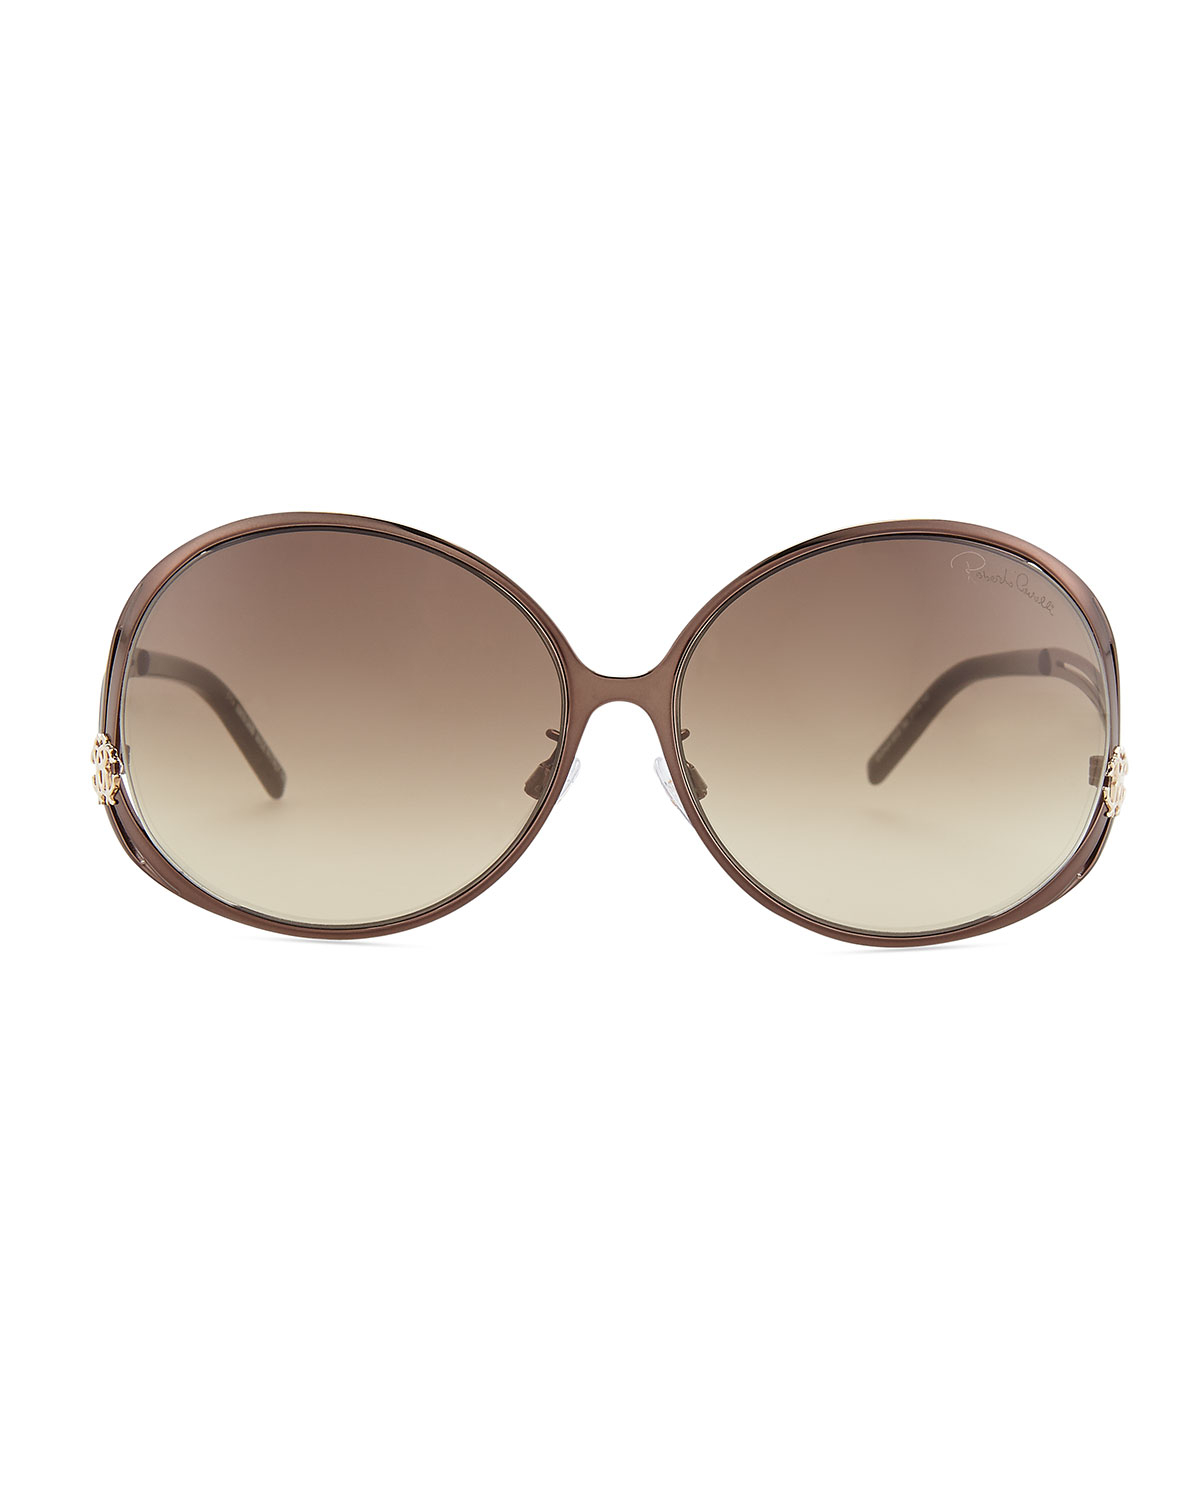 Roberto cavalli Round Metal Sunglasses in Brown